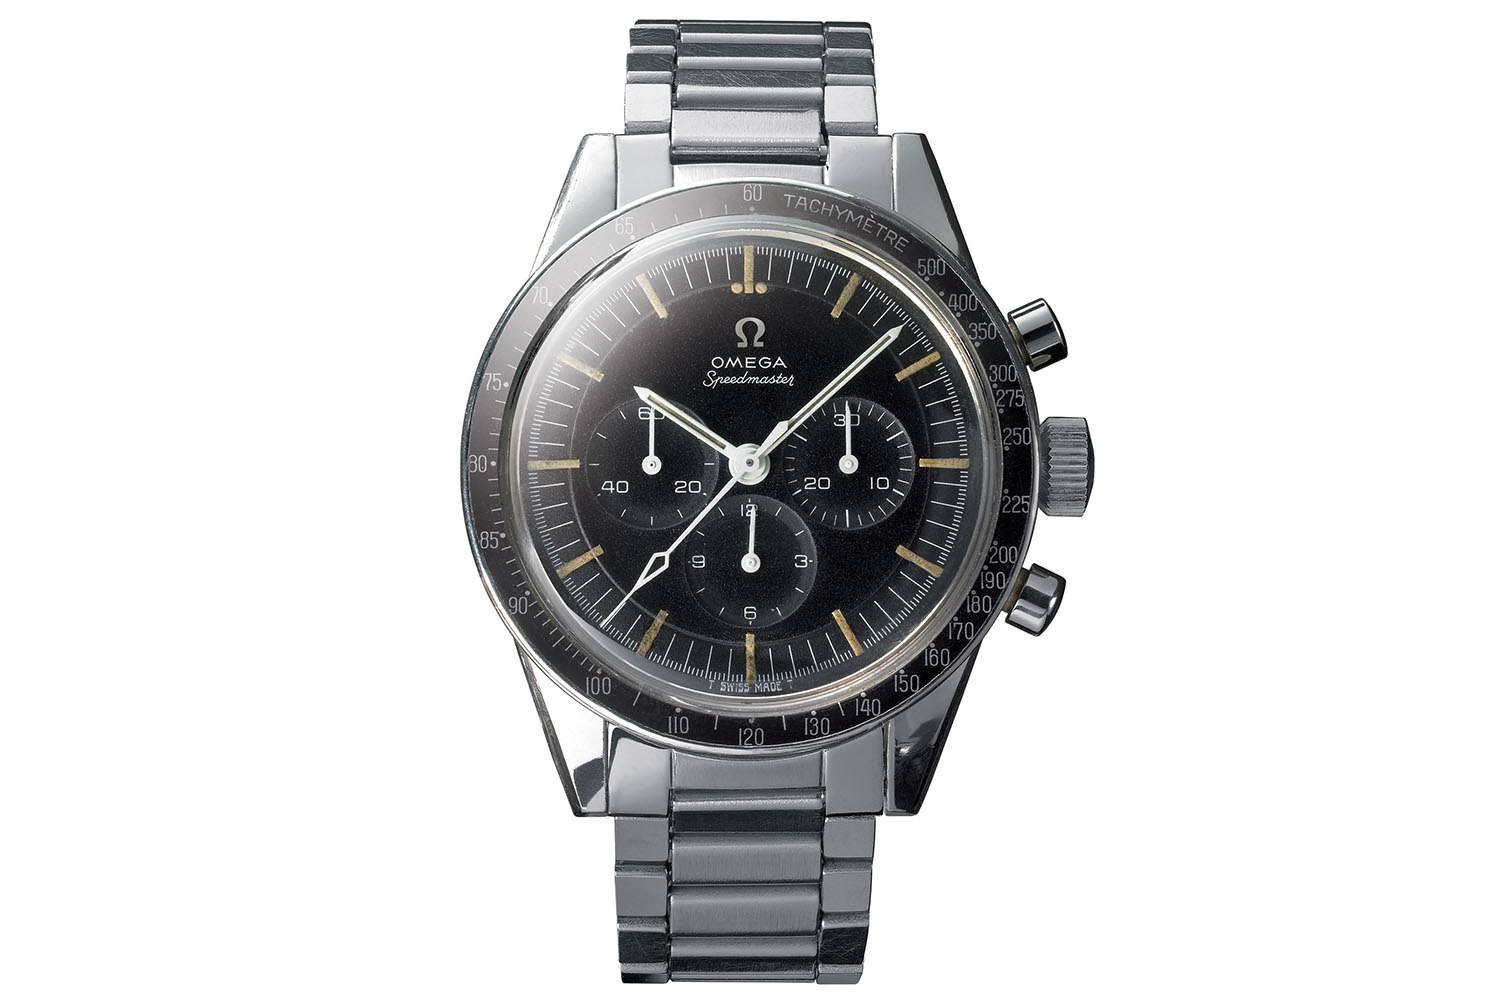 Omega Speedmaster 105.003 Third generation 1963